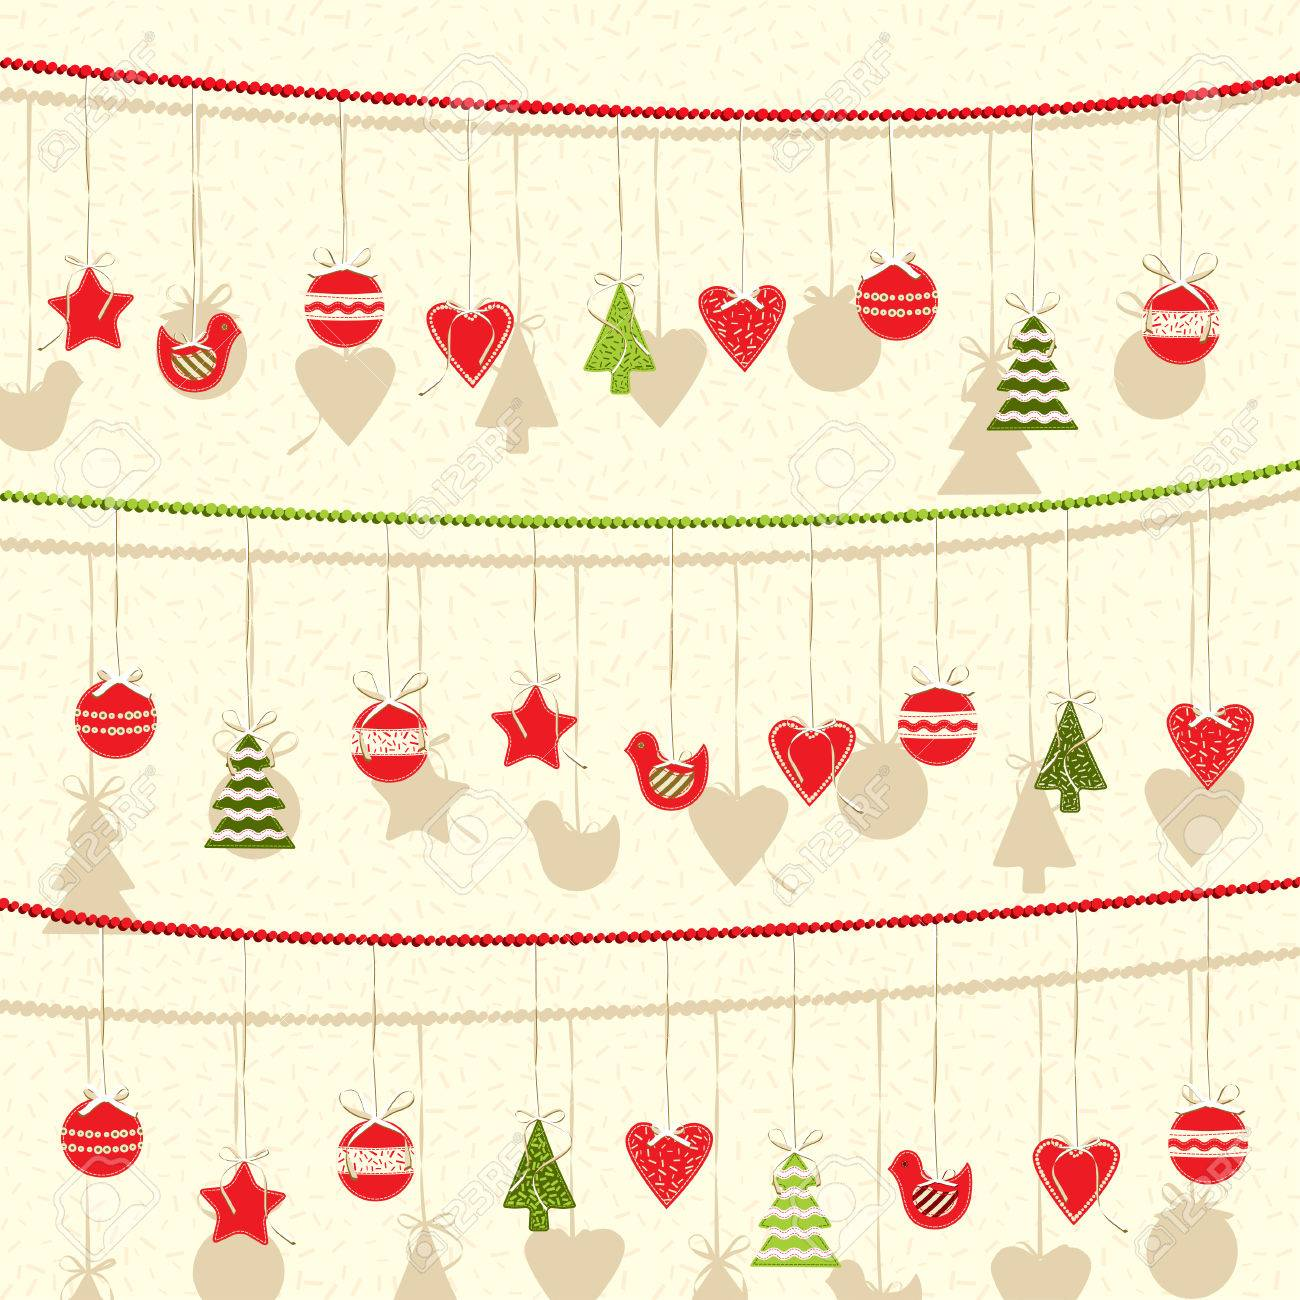 Retro Christmas Garland Vector Background Flat Style Royalty Free